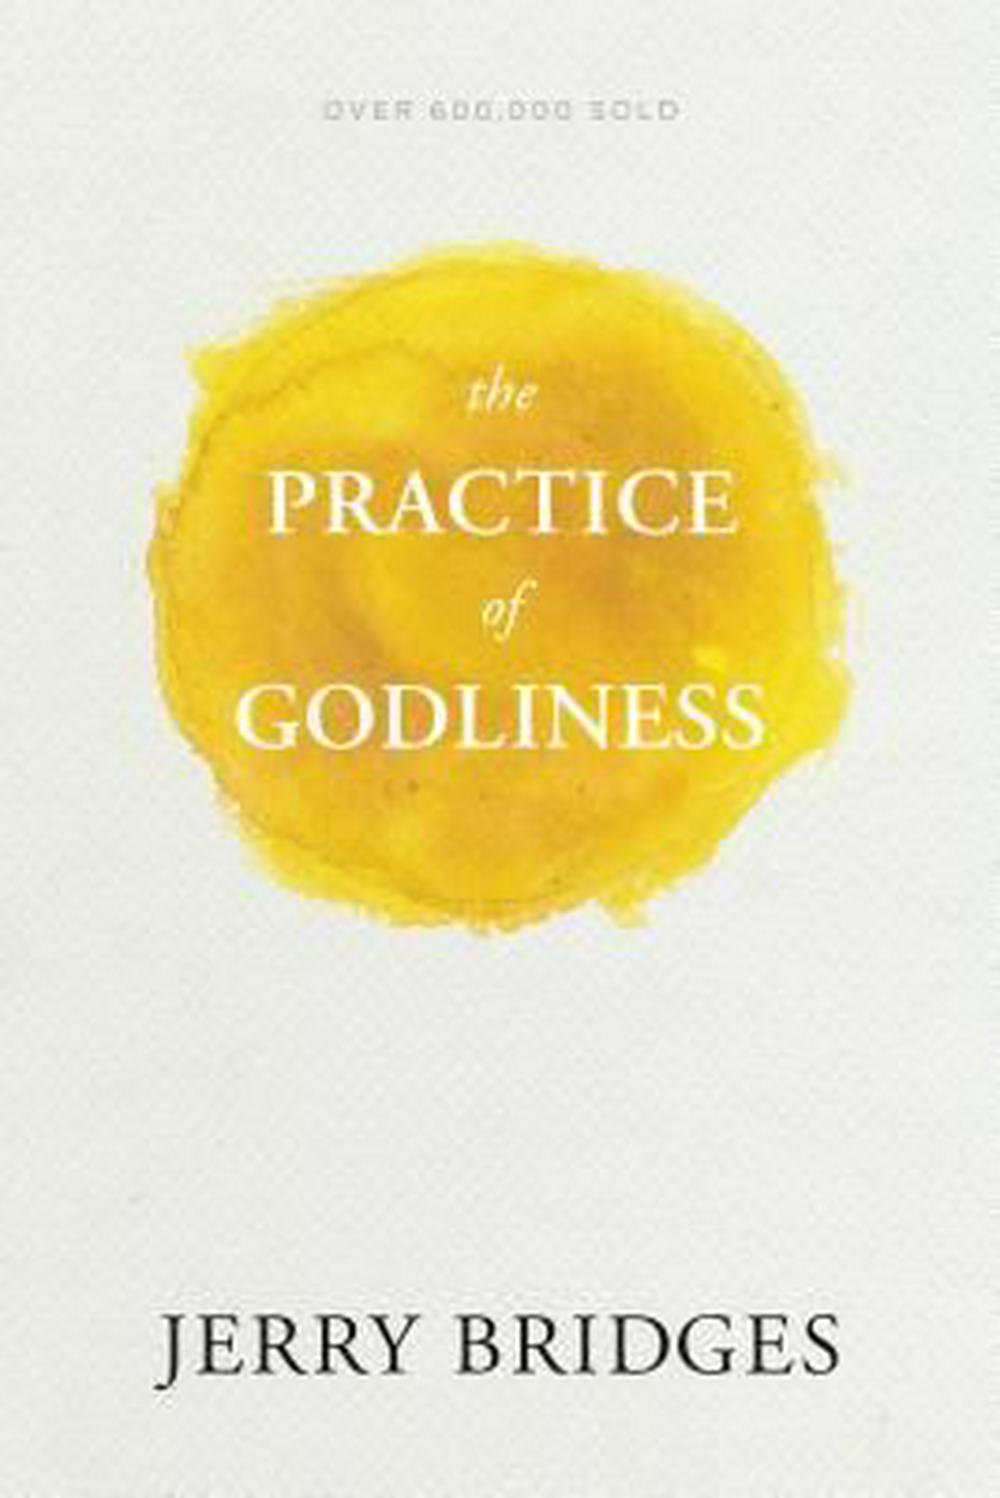 The Practice of Godliness by Jerry Bridges, ISBN: 9781631465949